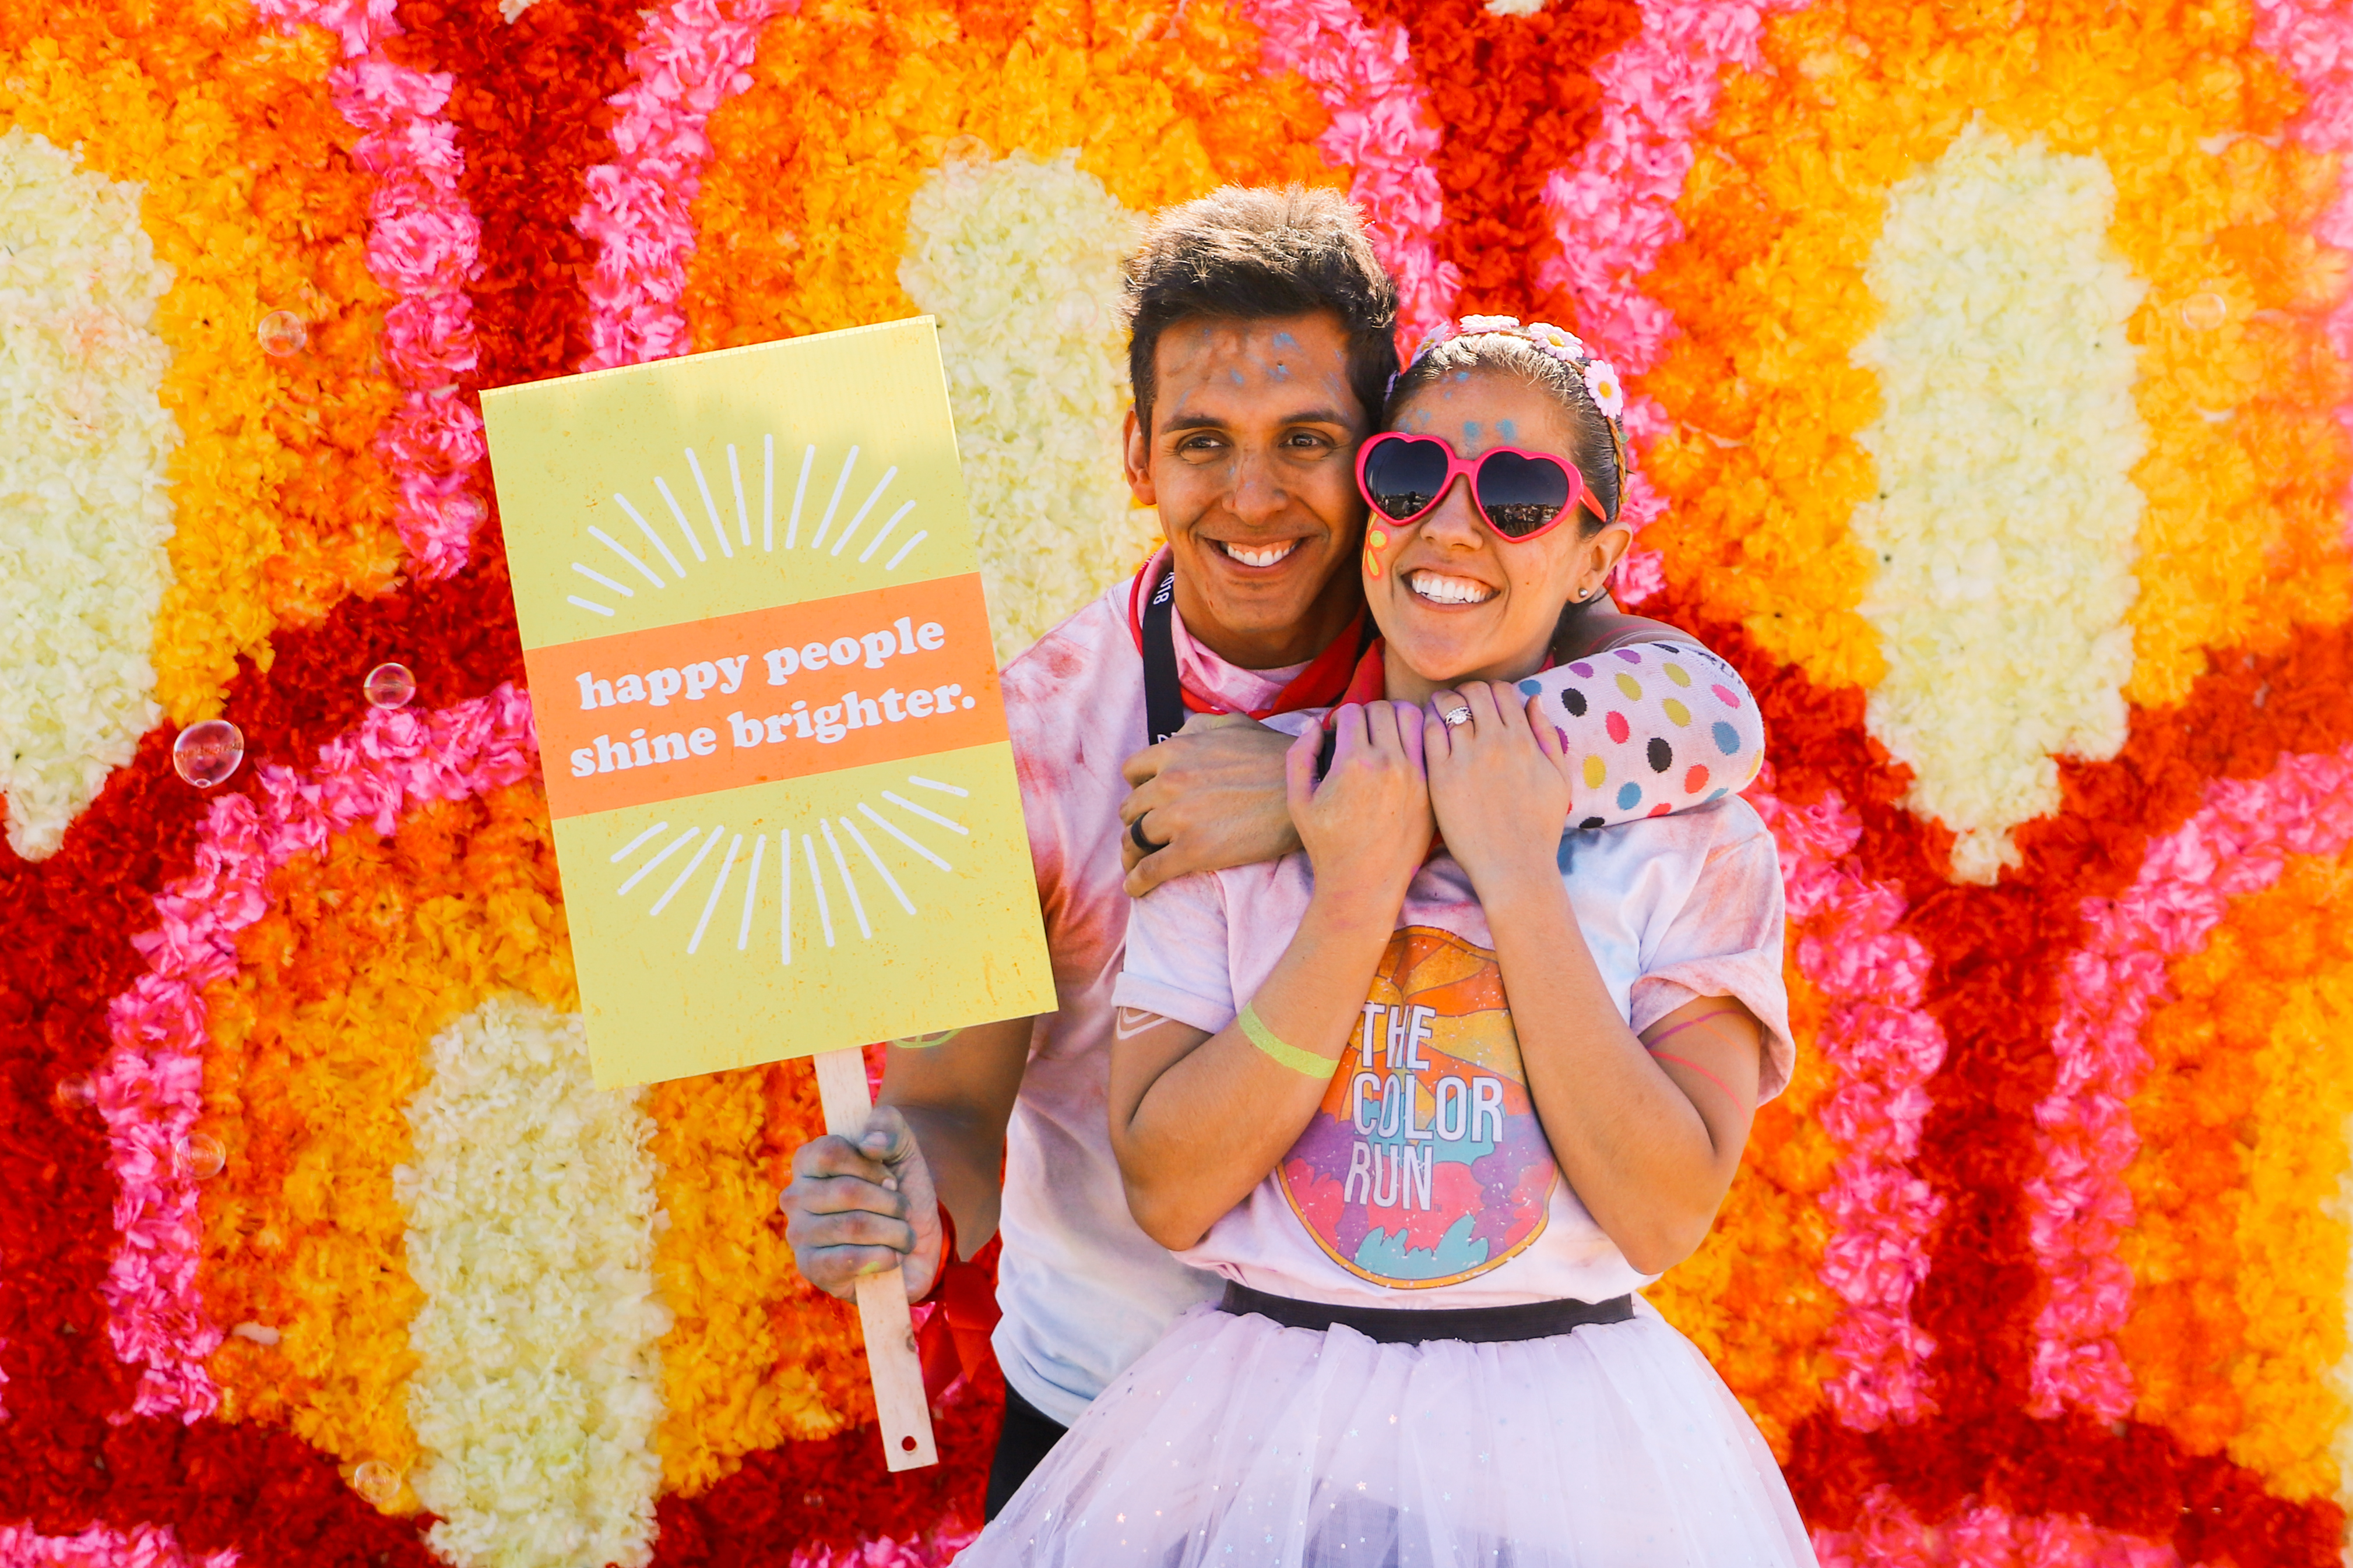 WIN: A double registration to The Color Run Love Tour Perth